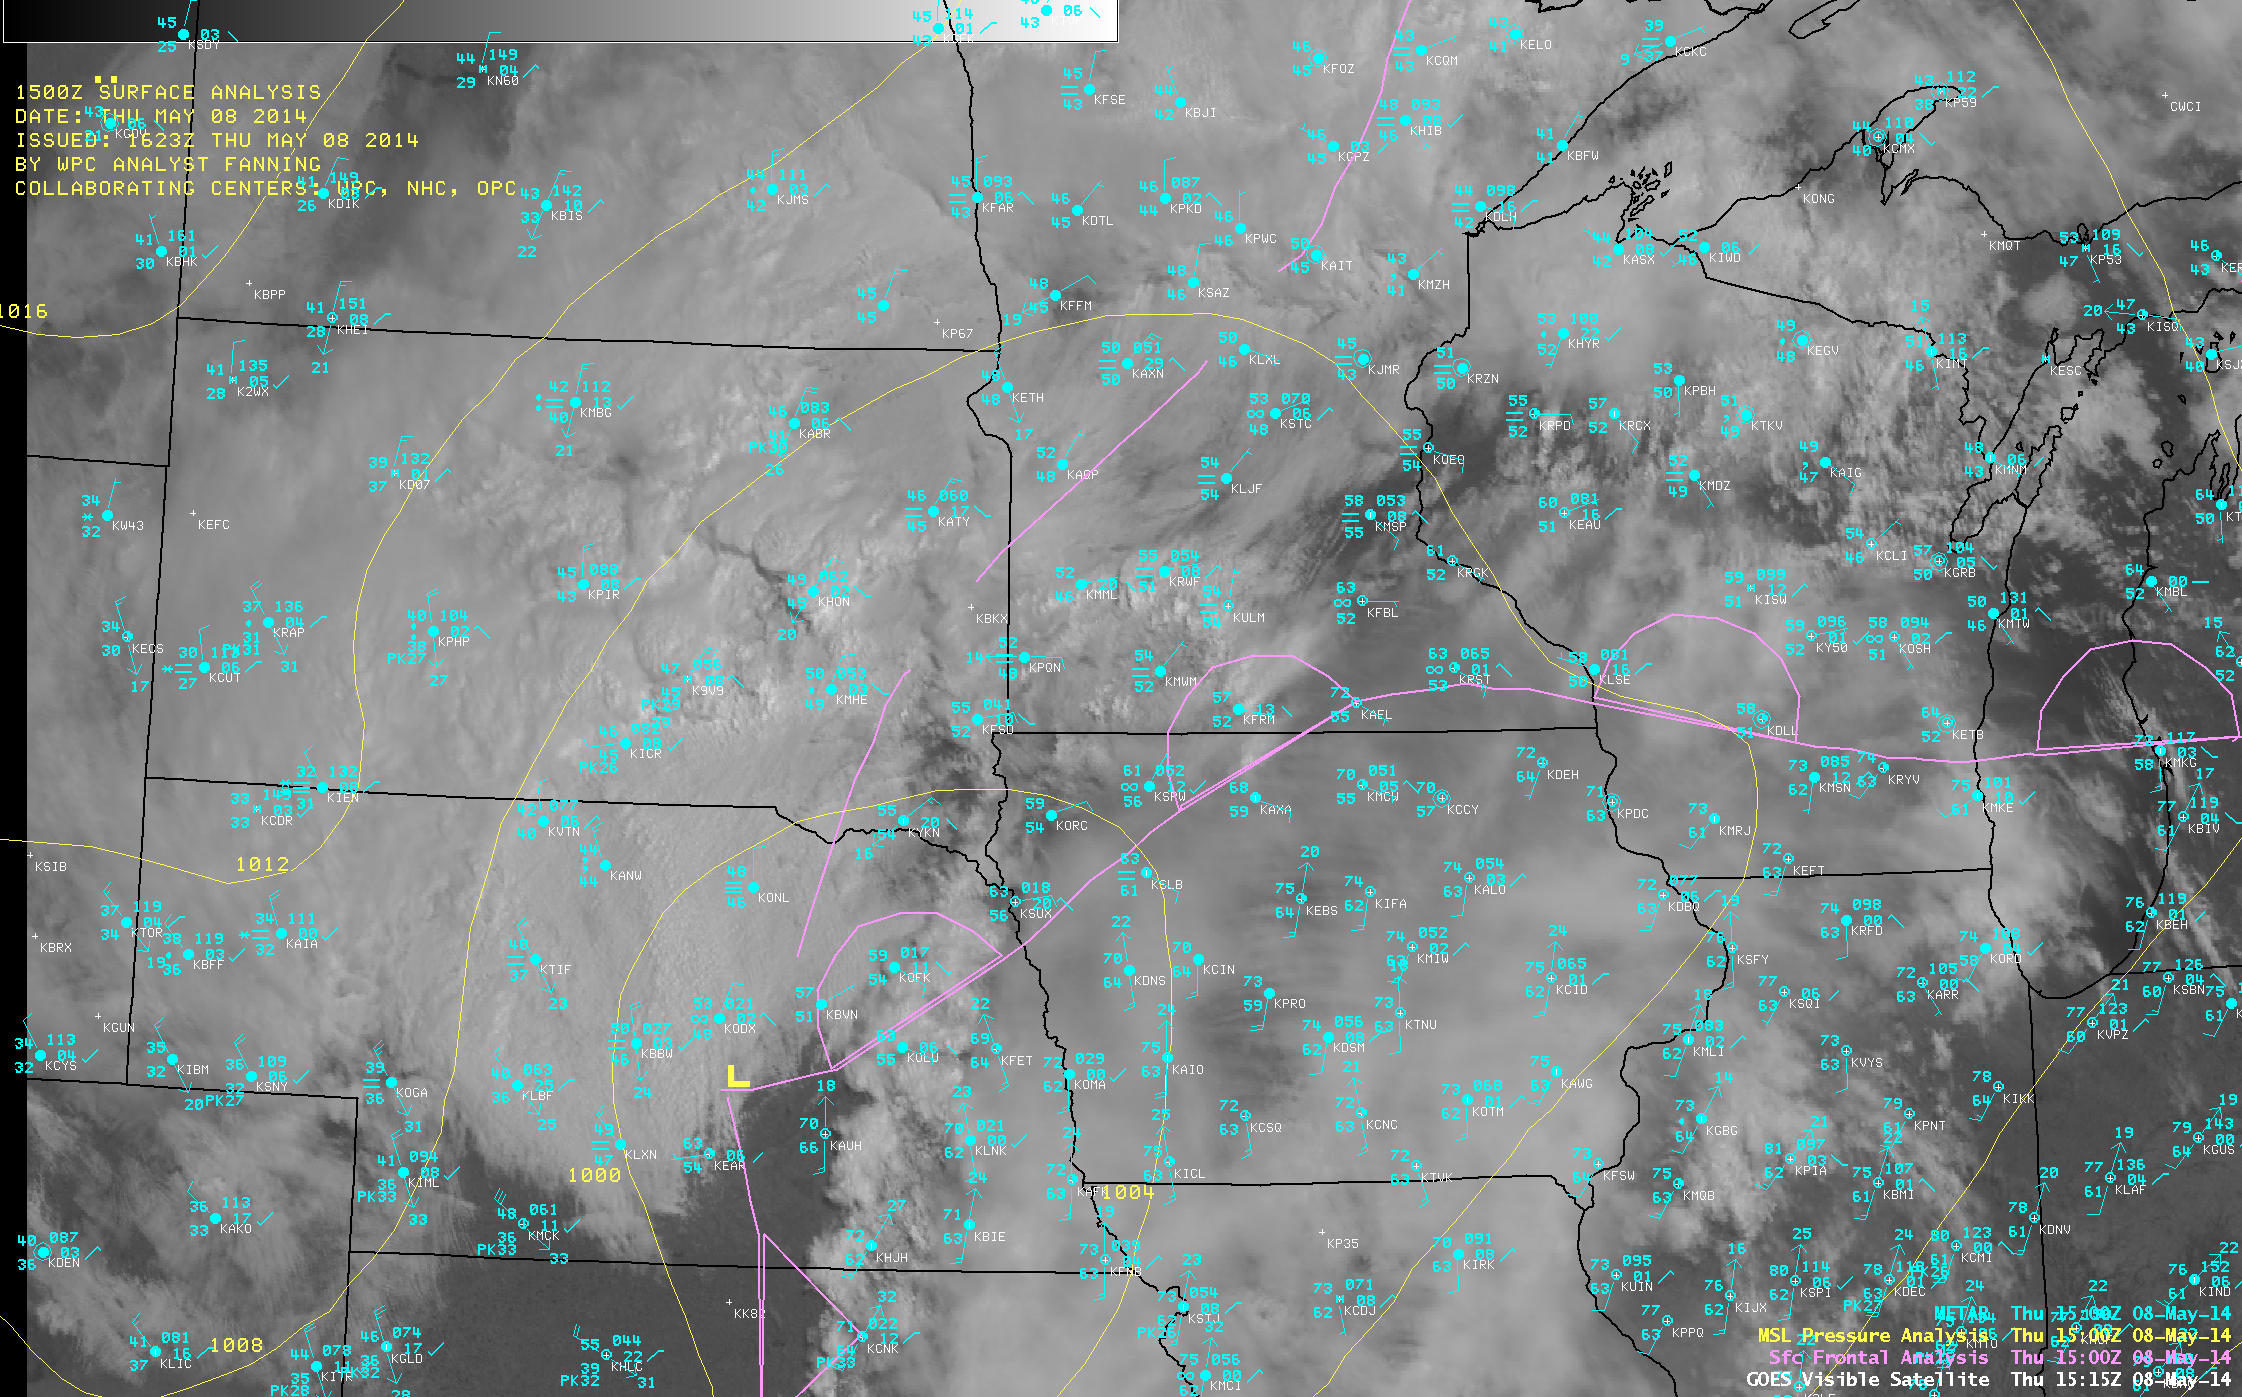 GOES-13 0.63 µm visible channel image with METAR surface reports and surface front and pressure analyses